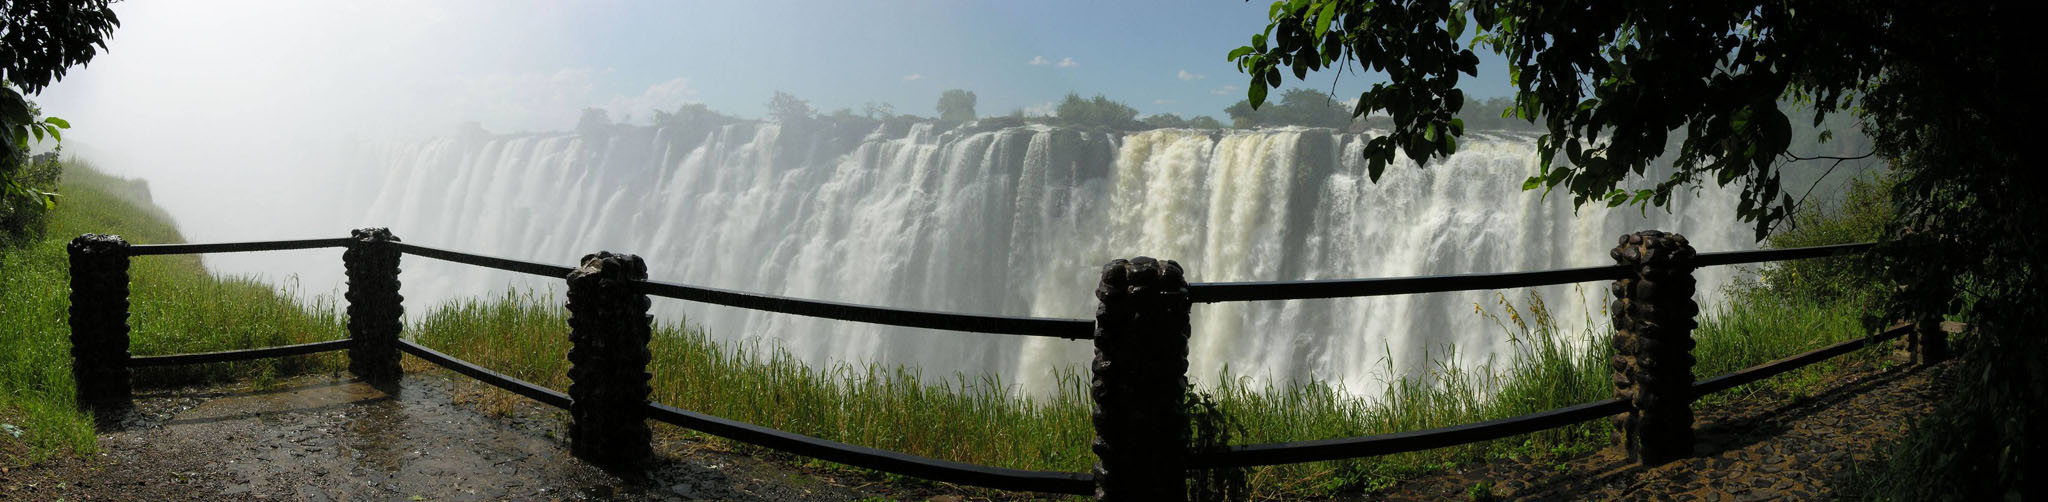 victoria falls1 The Largest Waterfall in the World   Victoria Falls